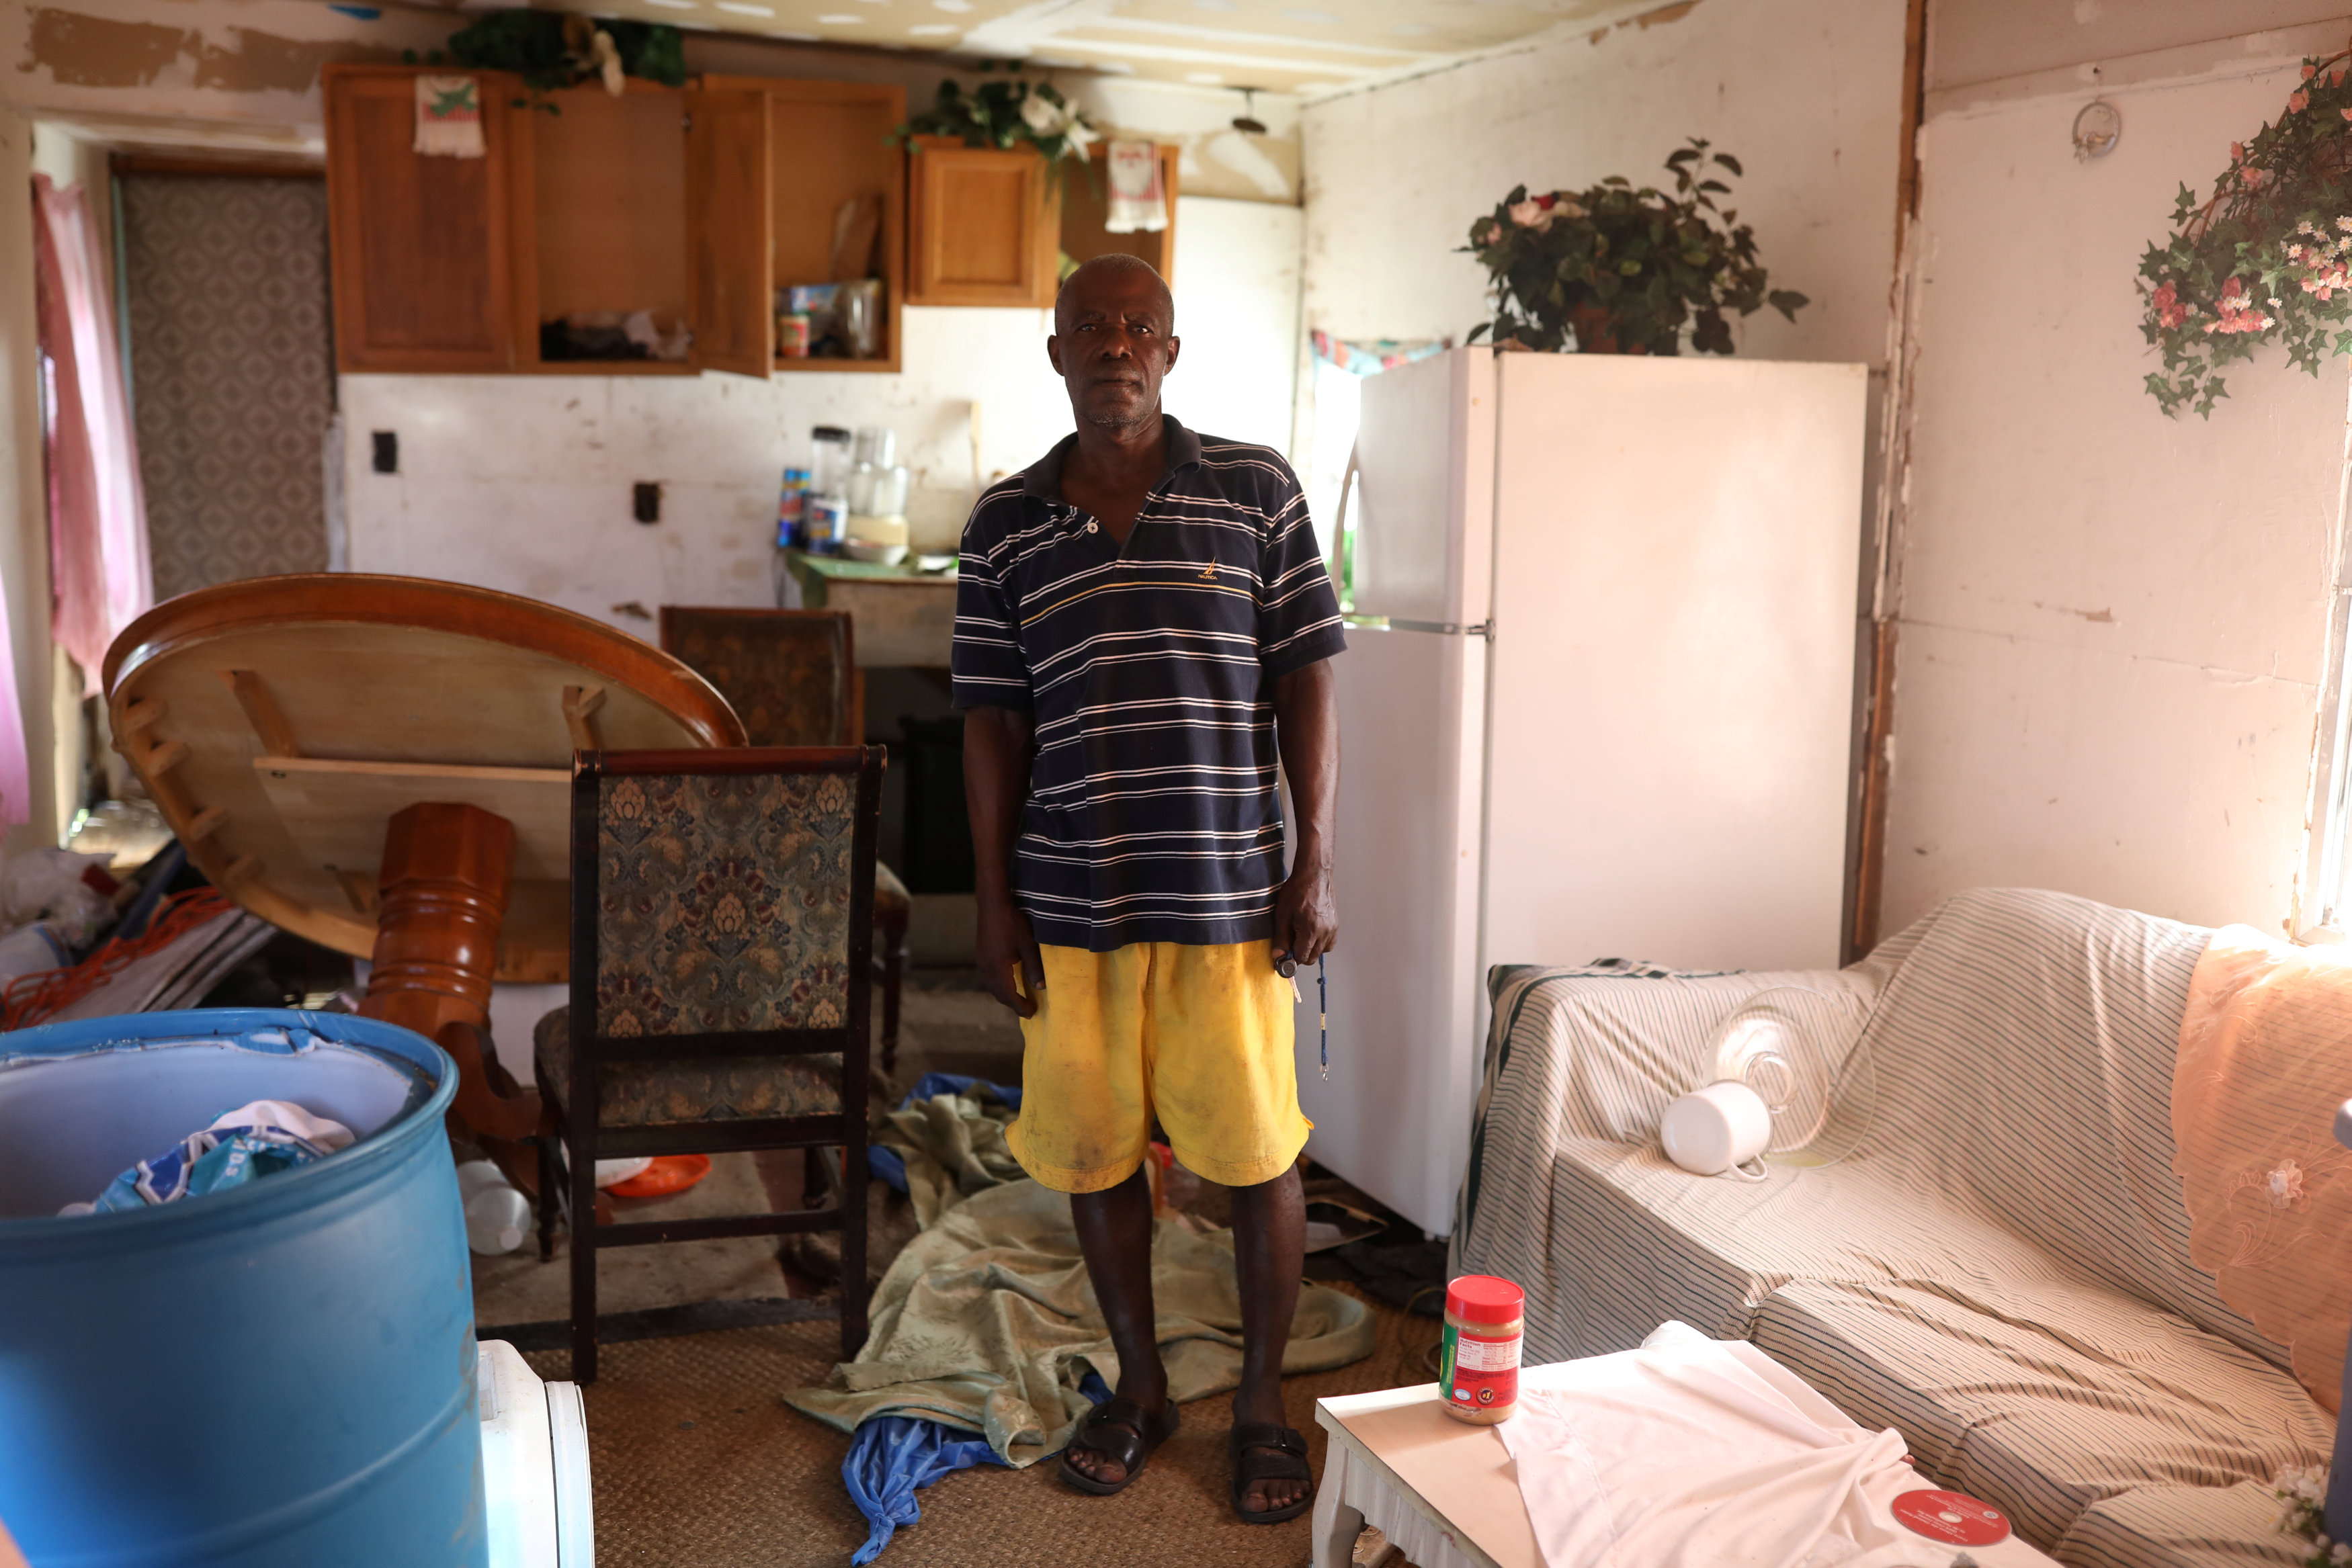 Renel Madere stands inside his mobile home, which was damaged by Hurricane Irma in Immokalee, Florida on Sept. 12, 2017 (Reuters/Stephen Yang)